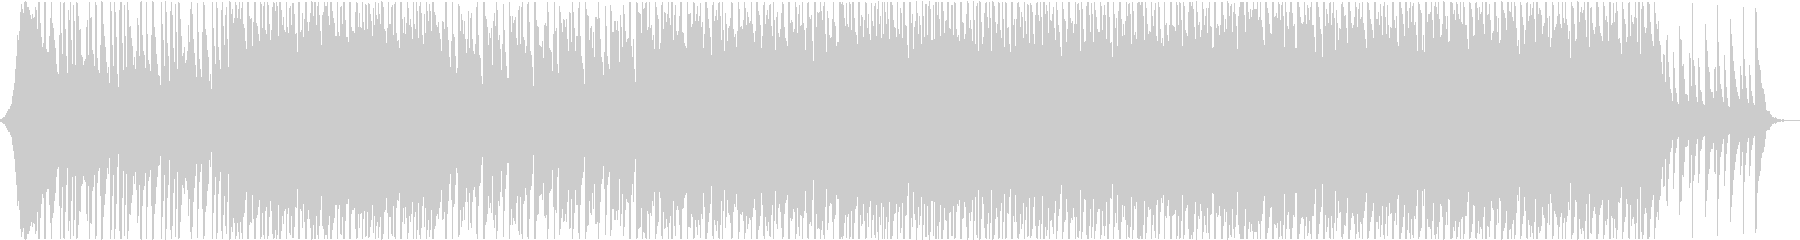 Asian style music's unreproduced waveform